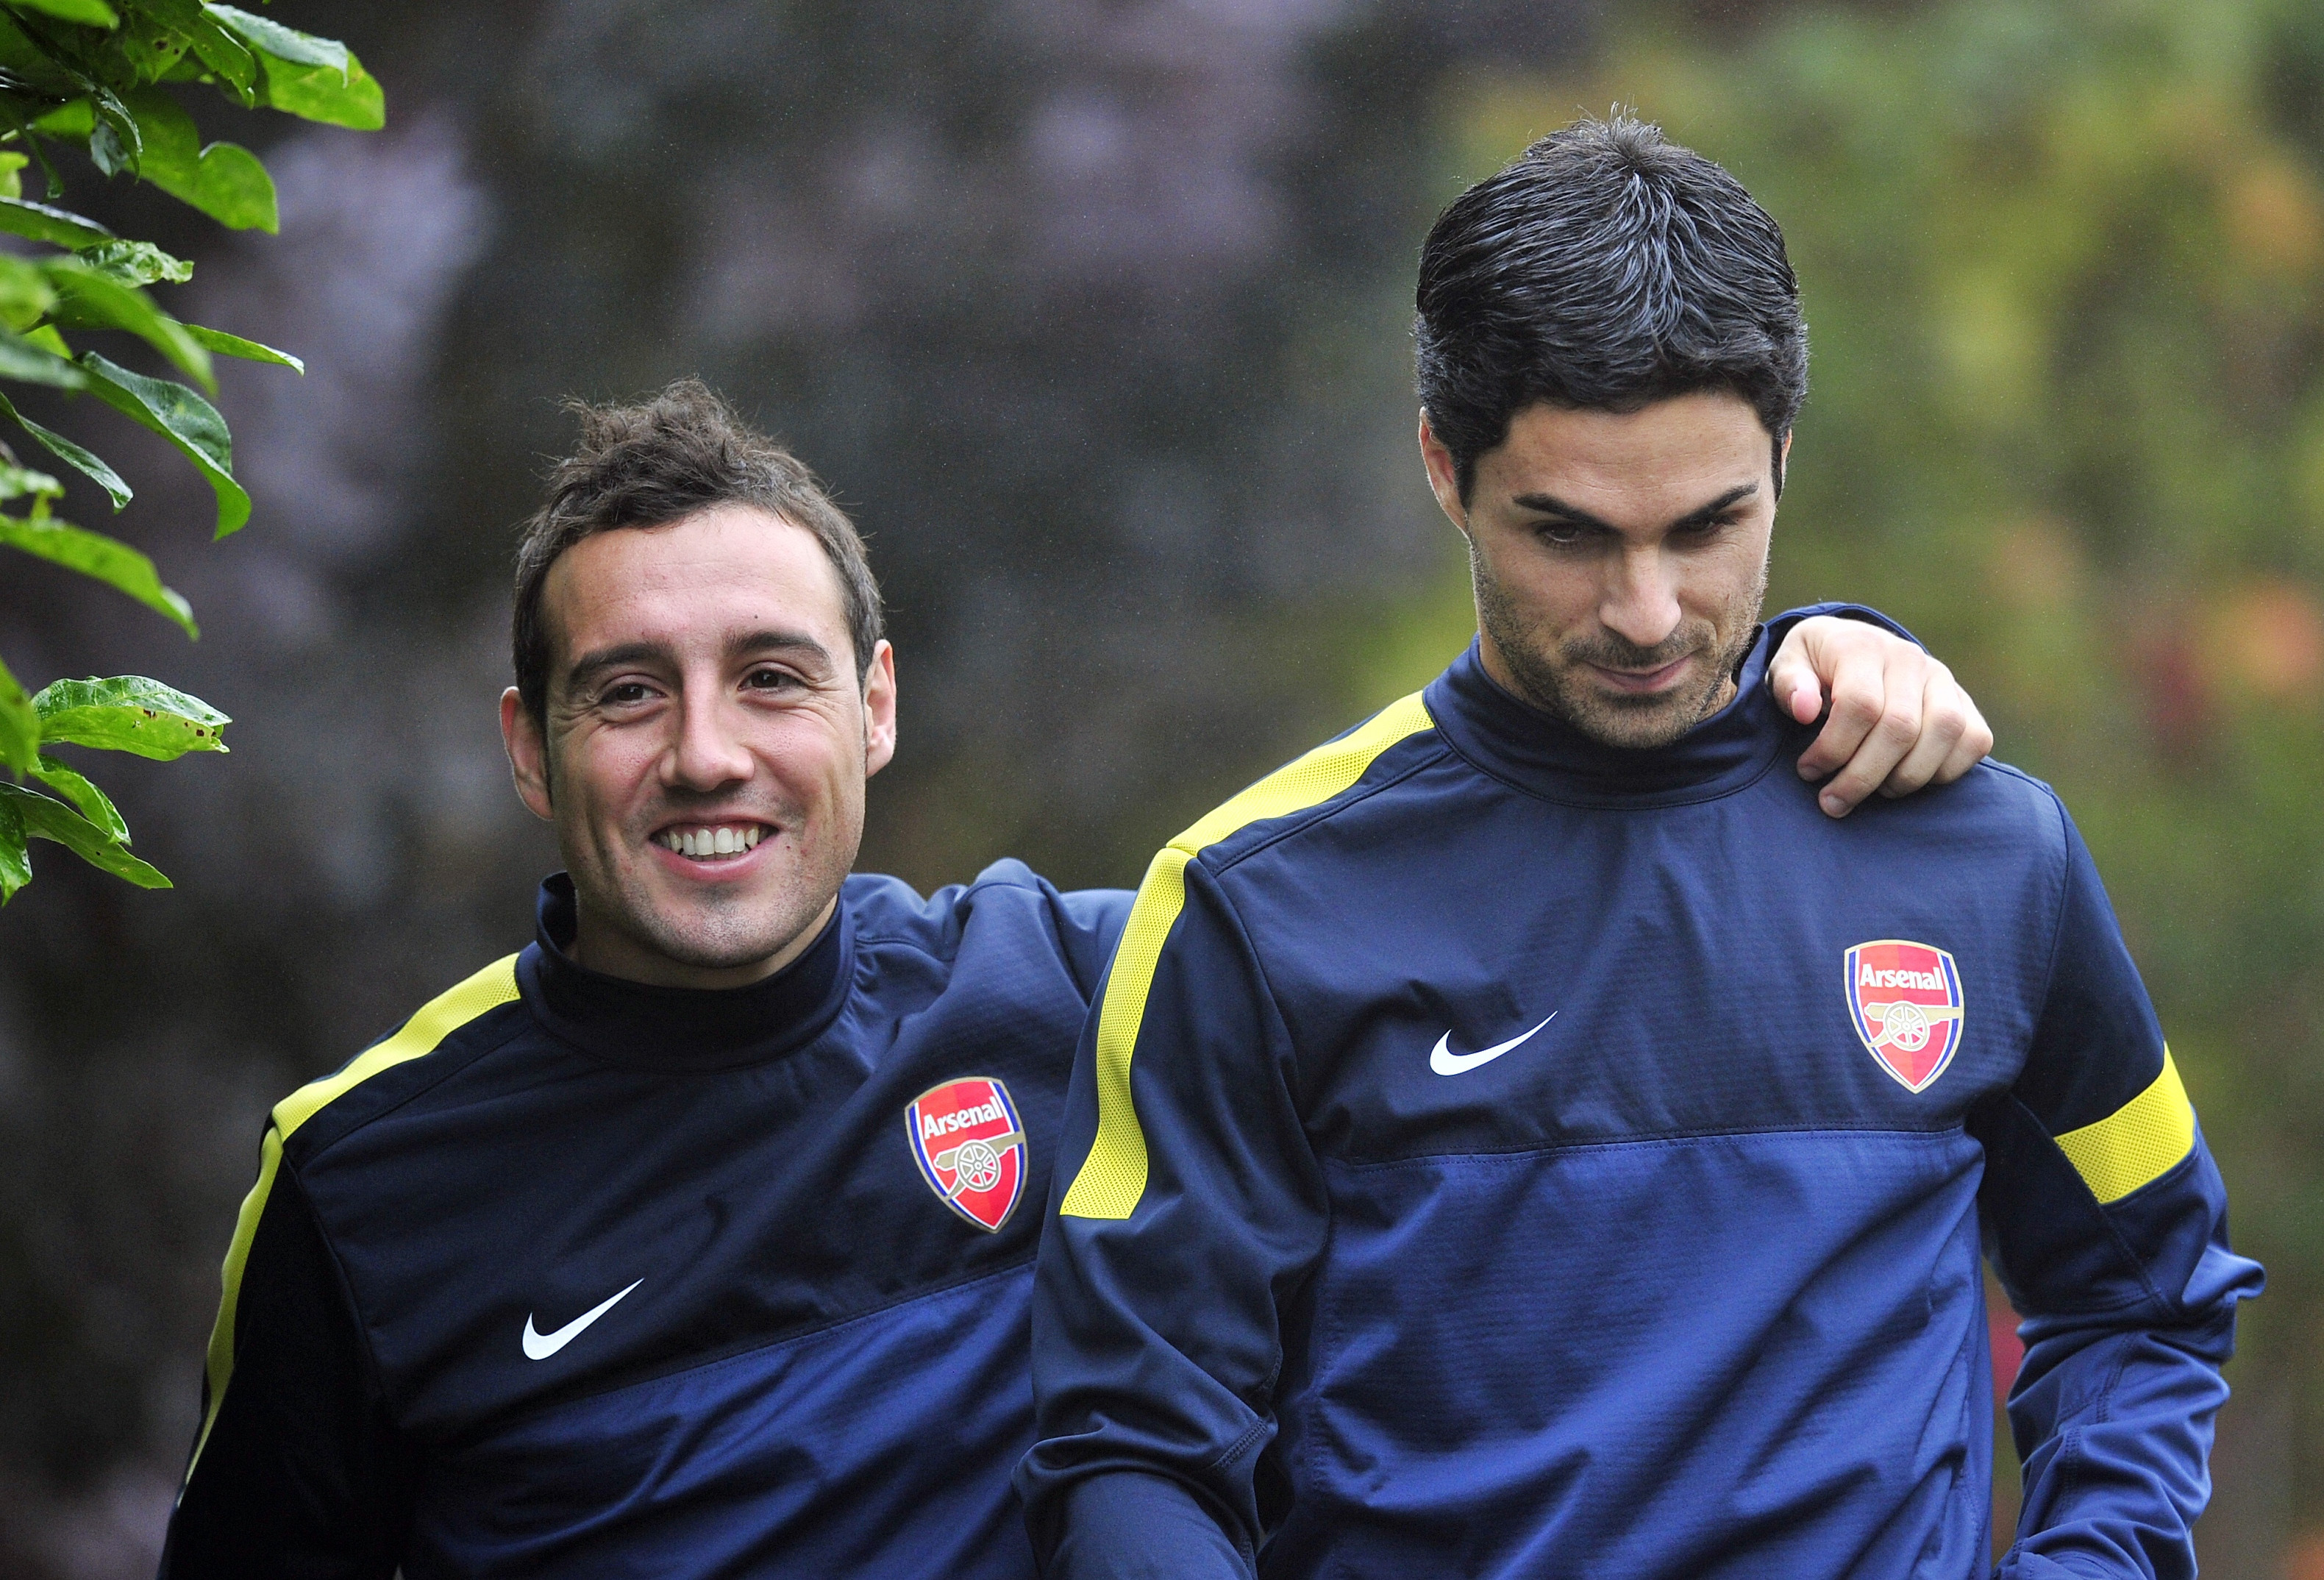 'Give him time!' – Santi Cazorla sends message to Arsenal over Mikel Arteta ahead of Europa League semi-final